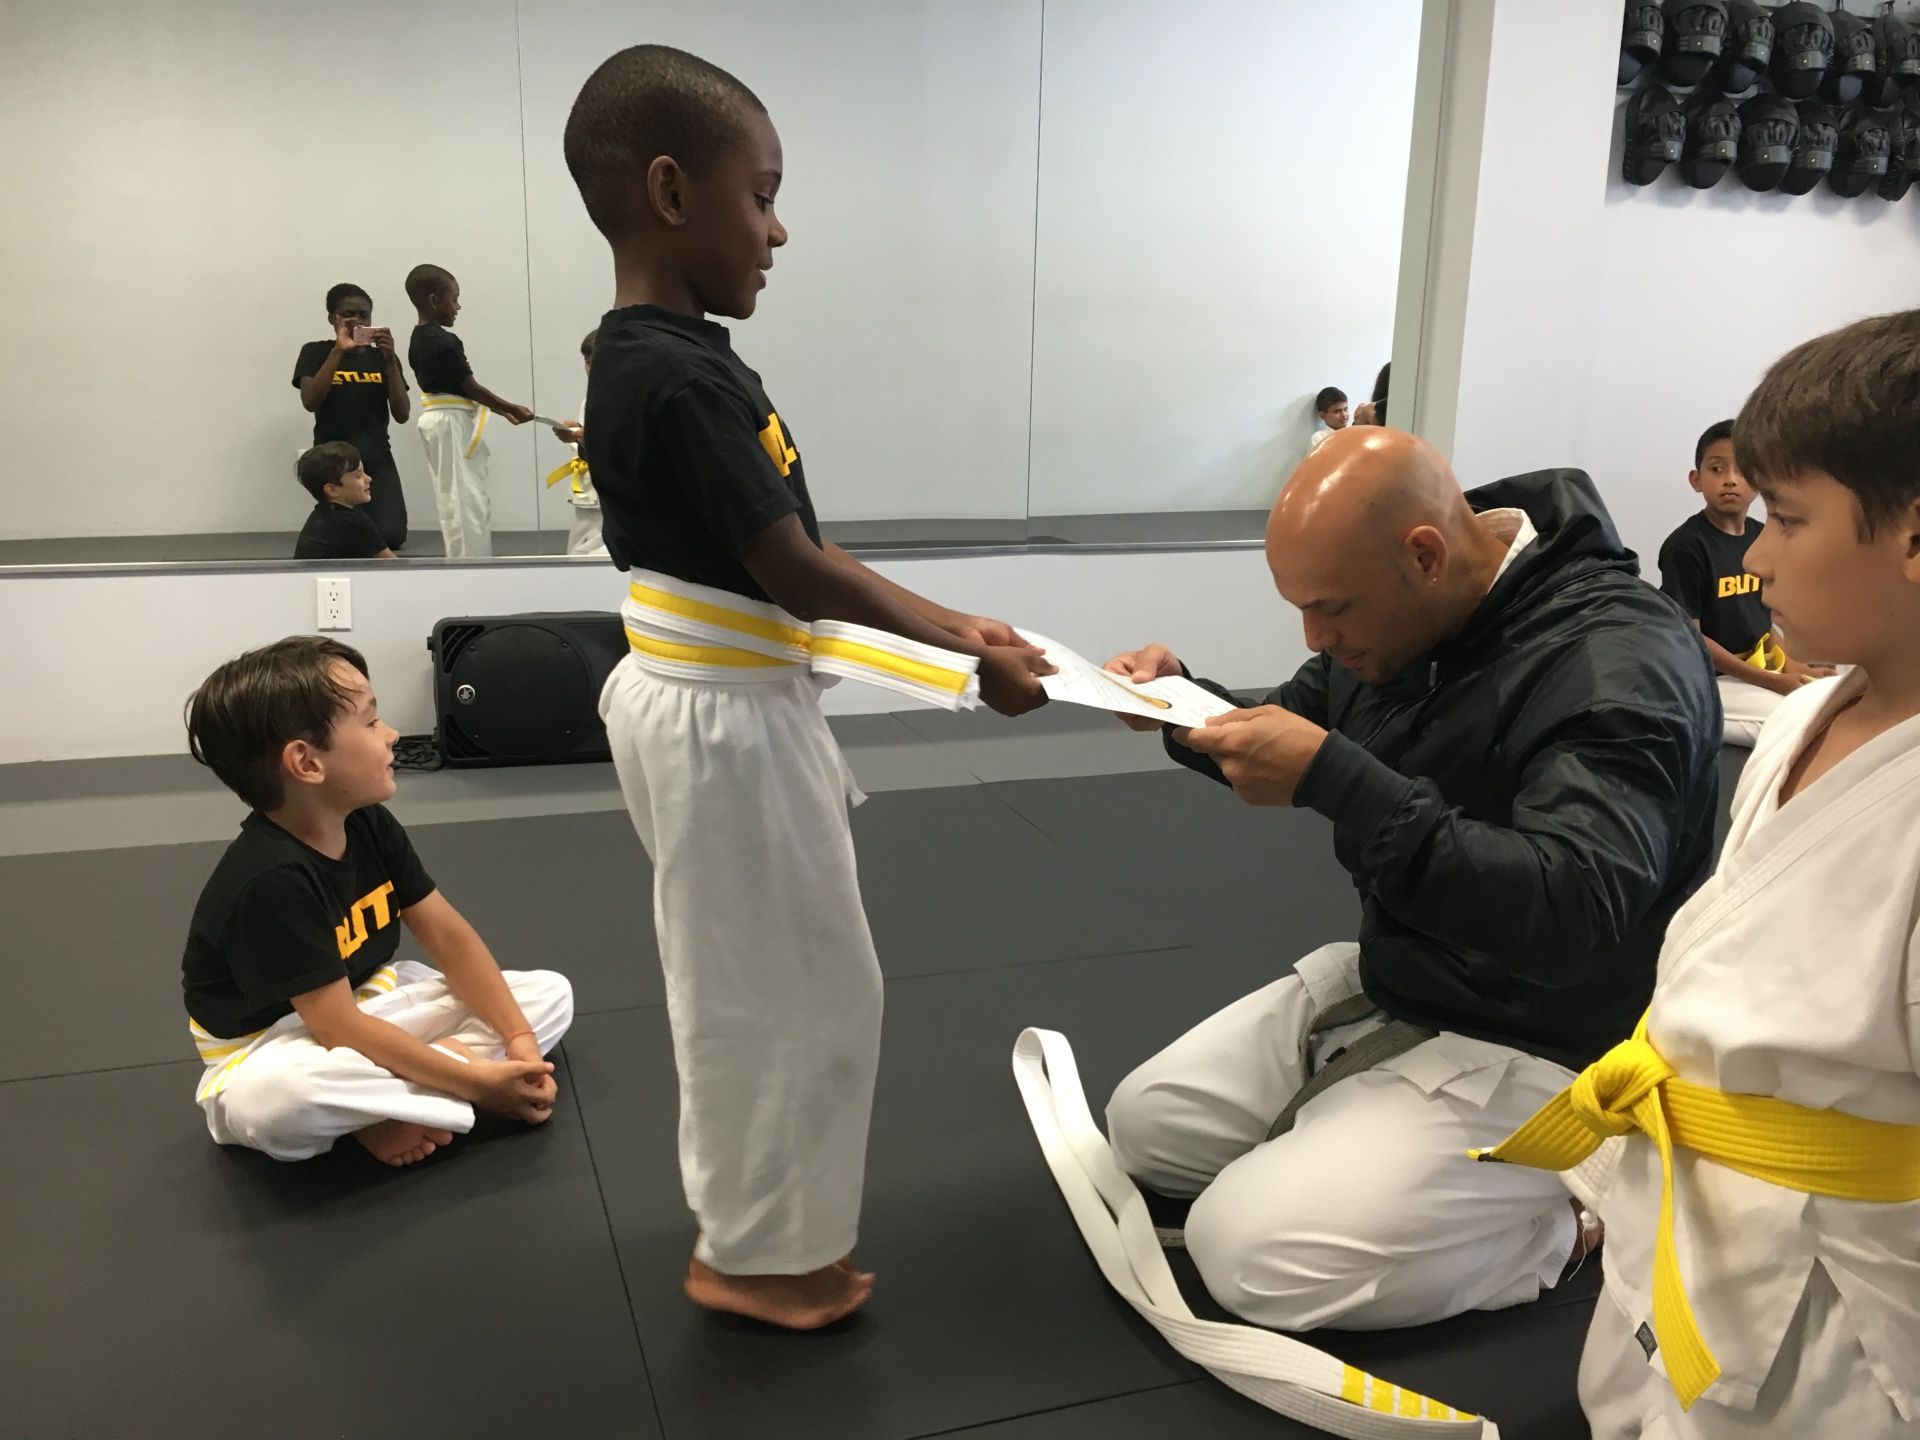 A Lil Lion receiving his first belt!